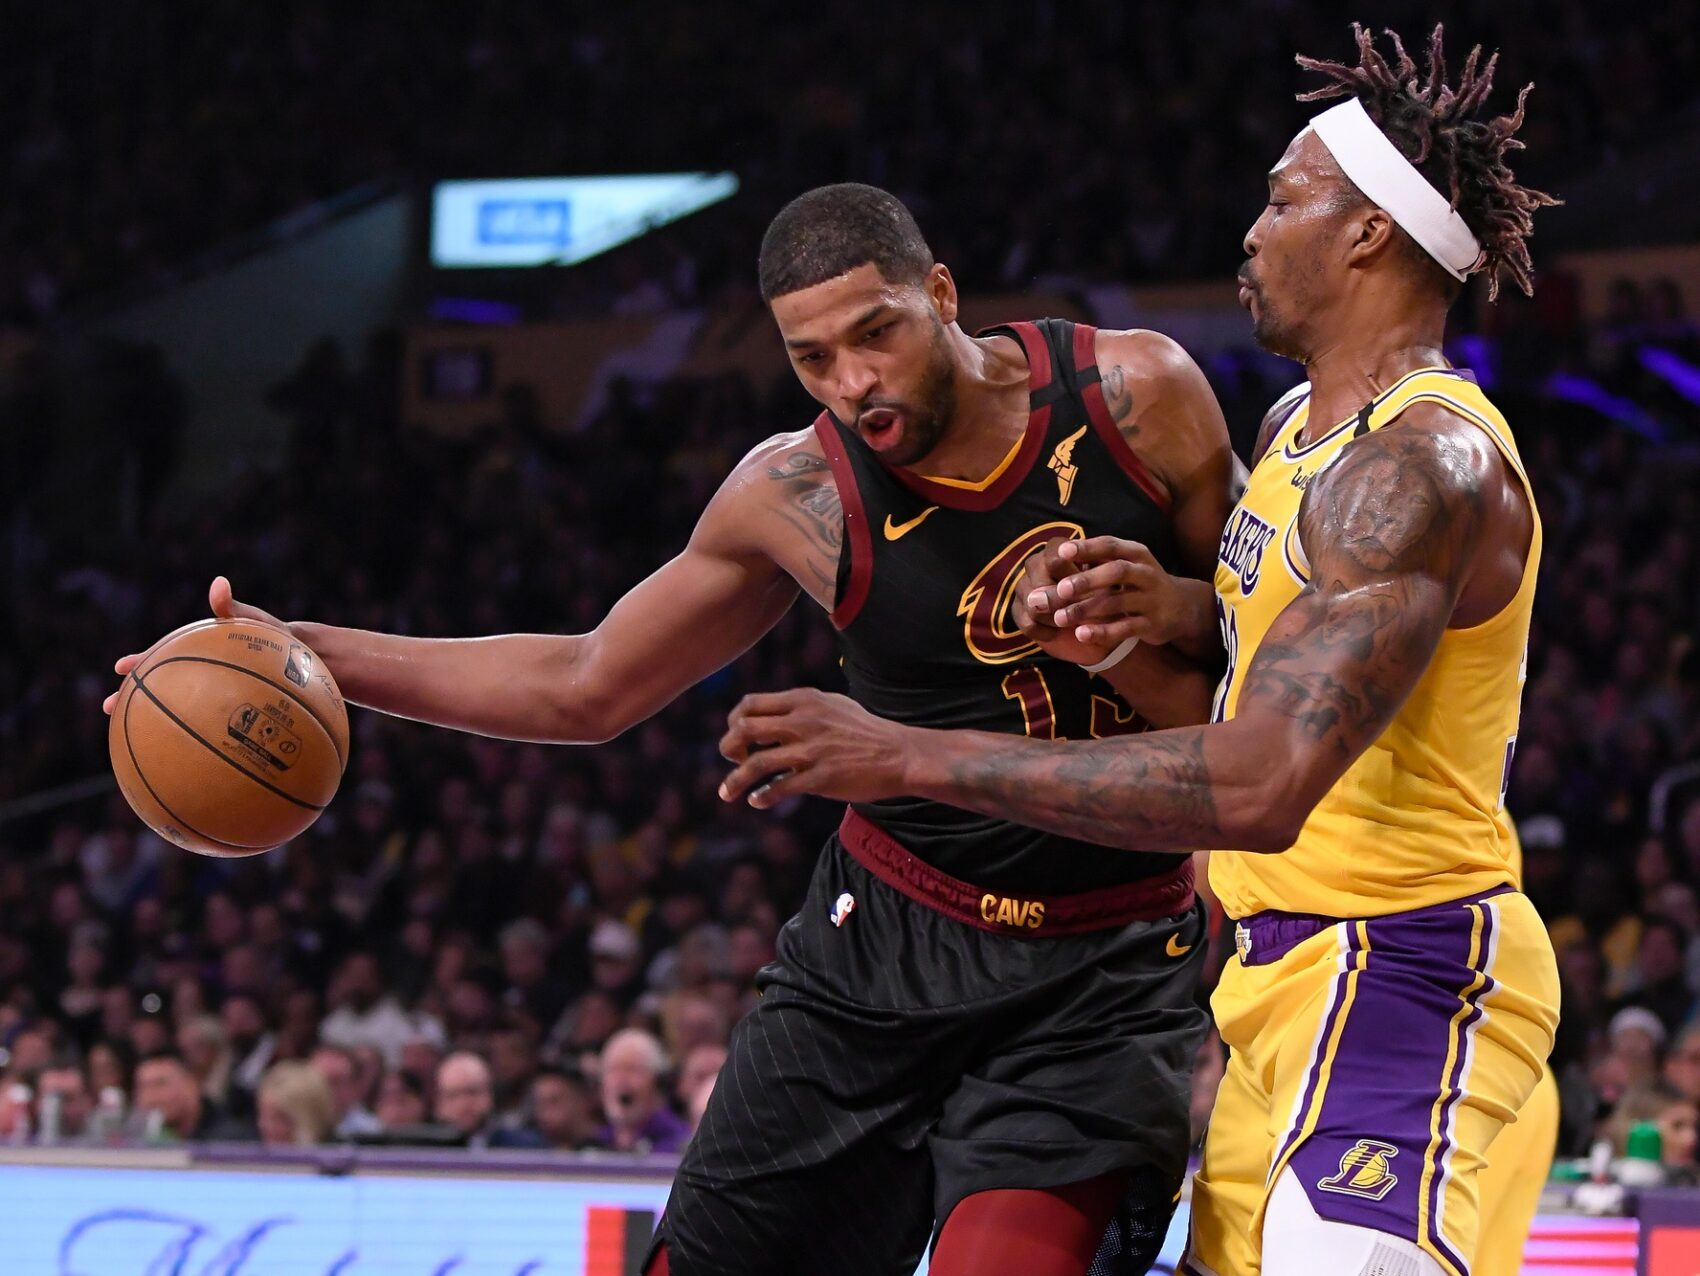 Tristan Thompson and Dwight Howard